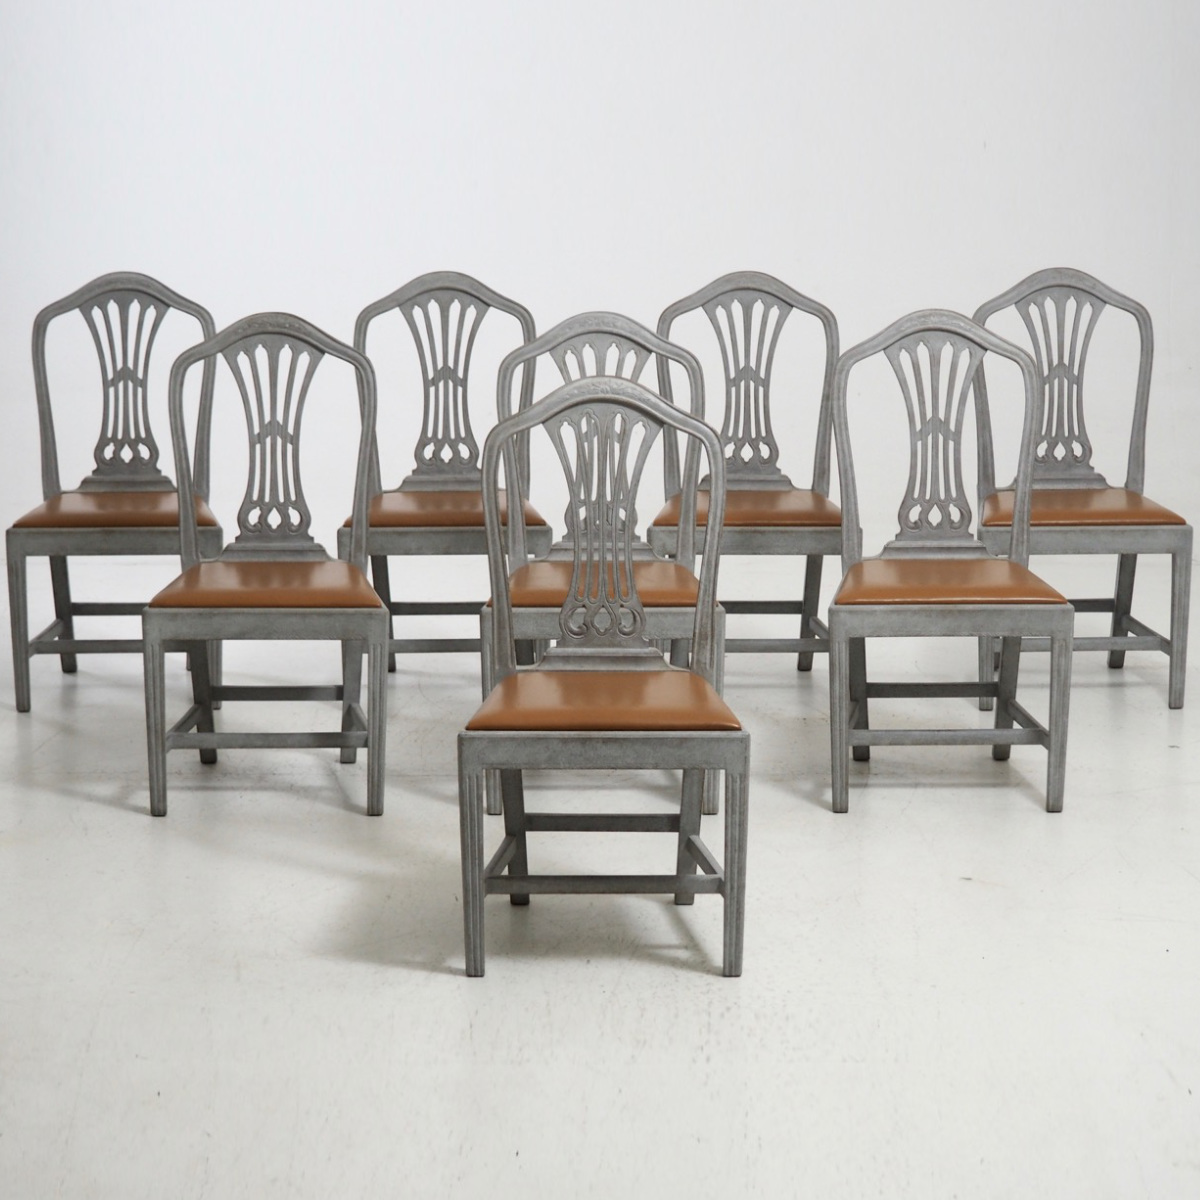 Chairs0_srcset-large.jpg